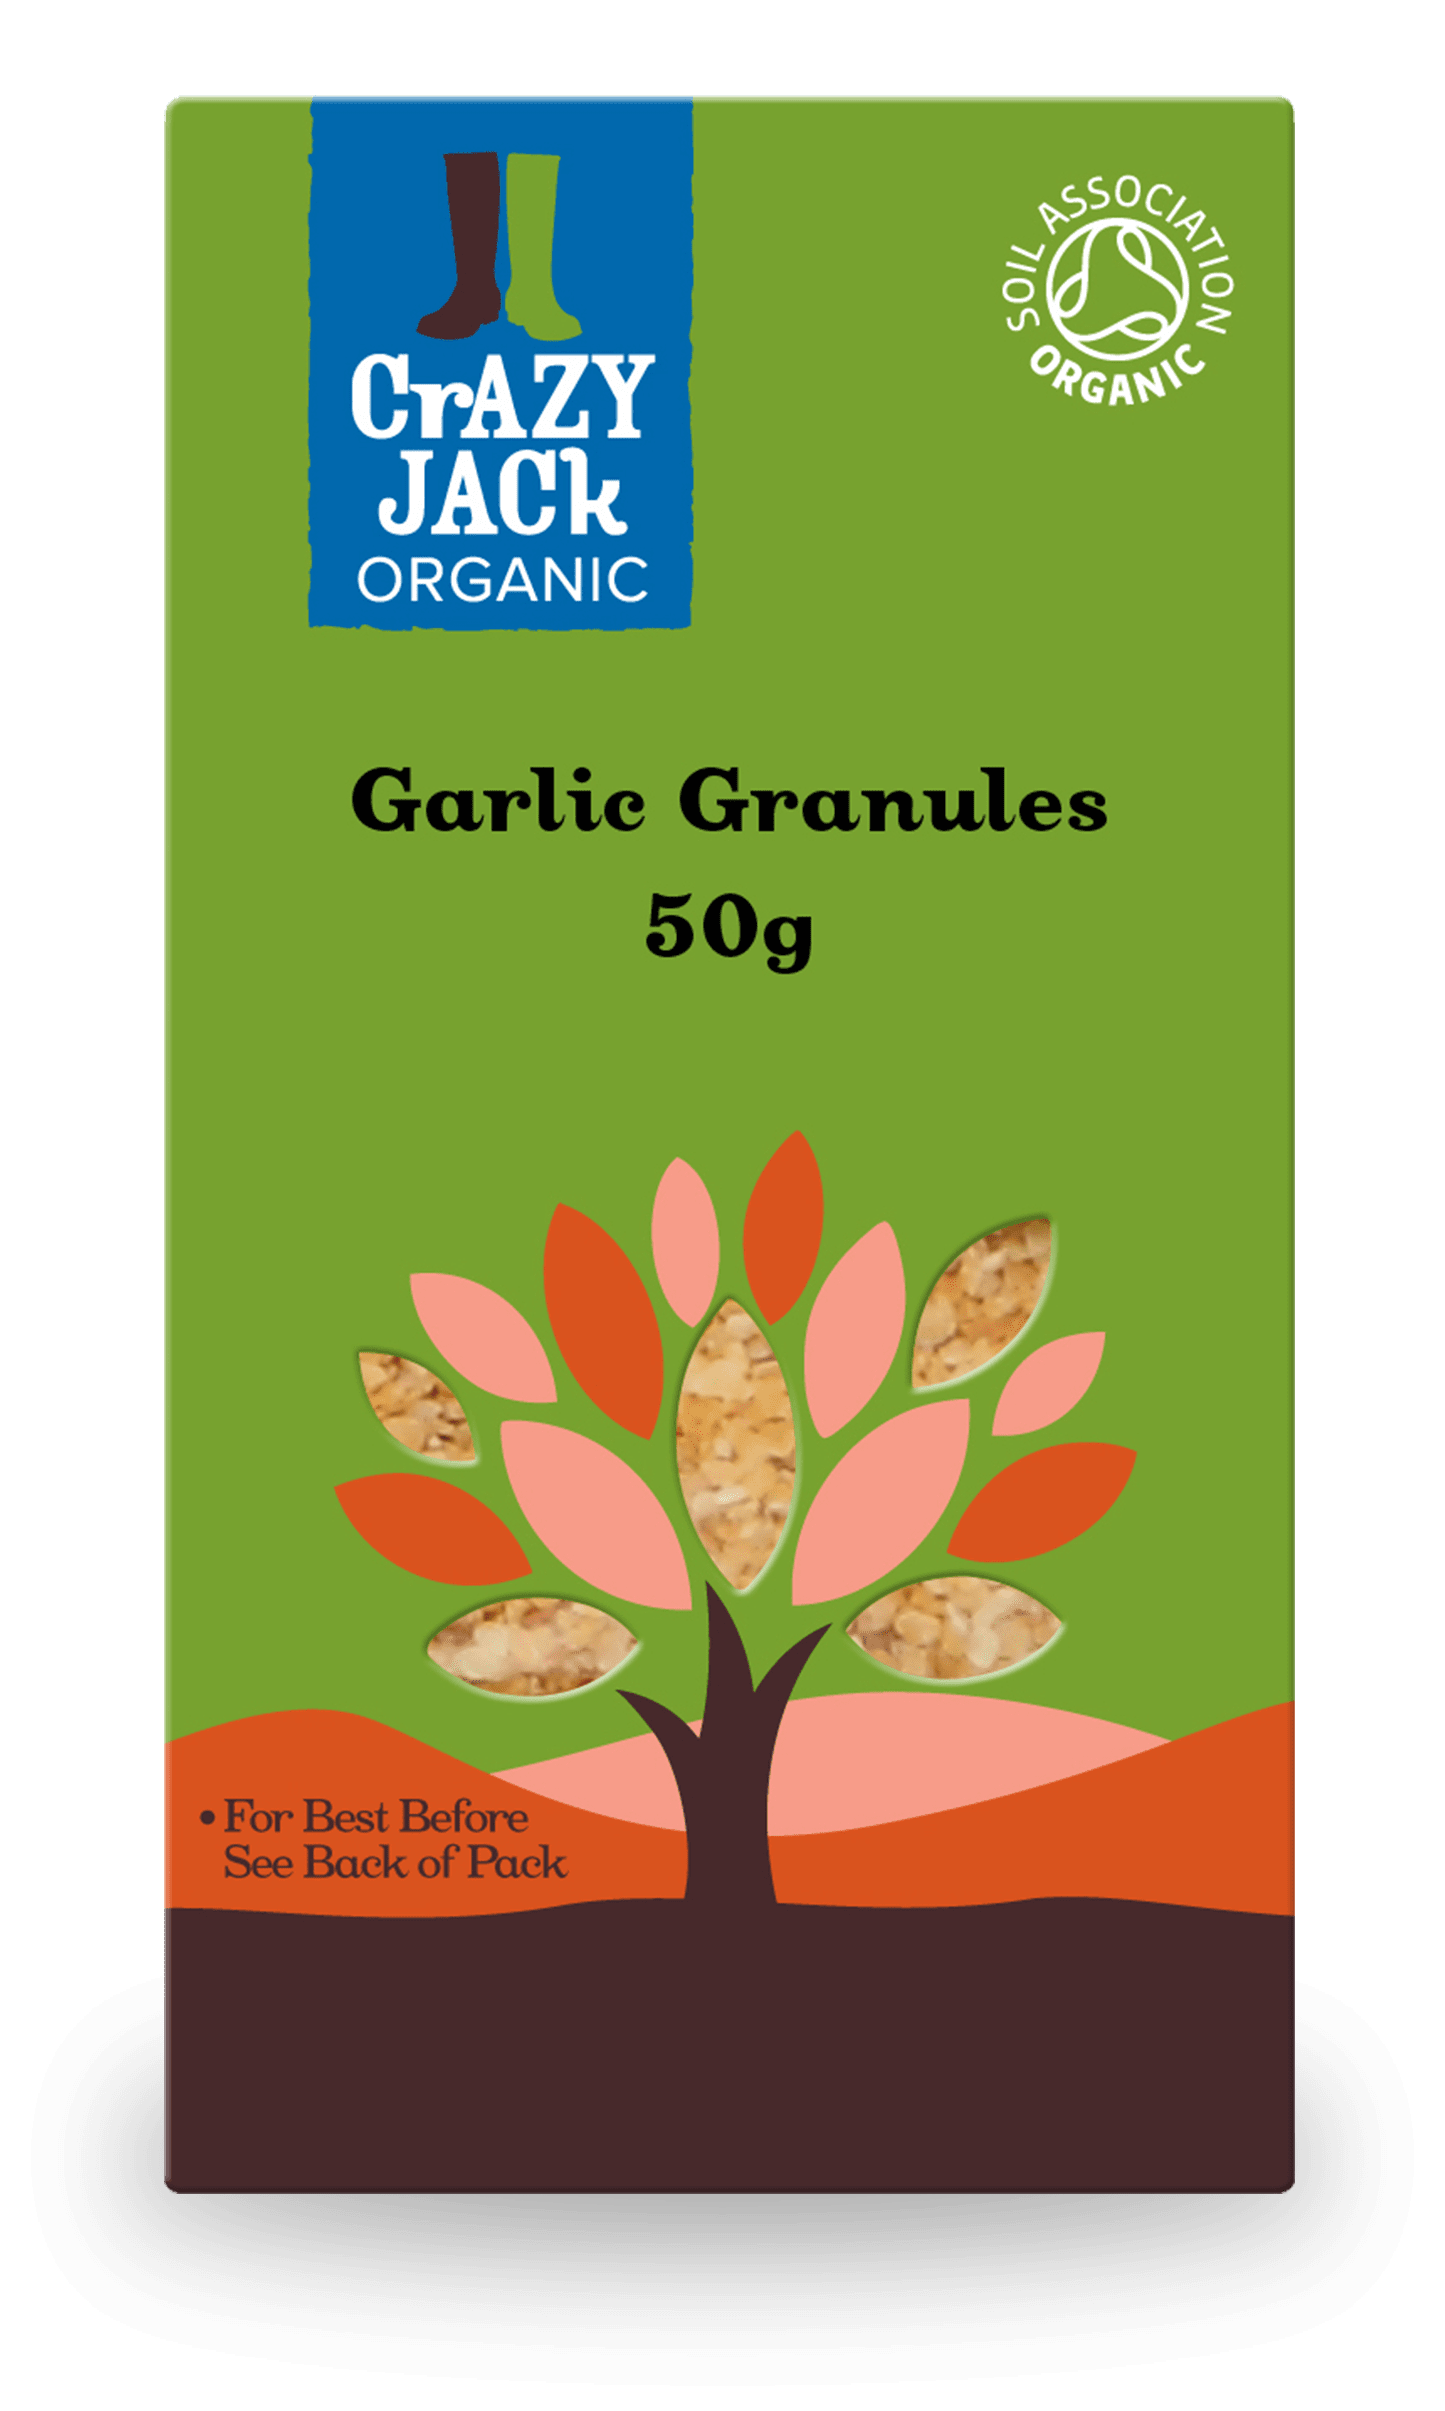 50g packet of garlic granules